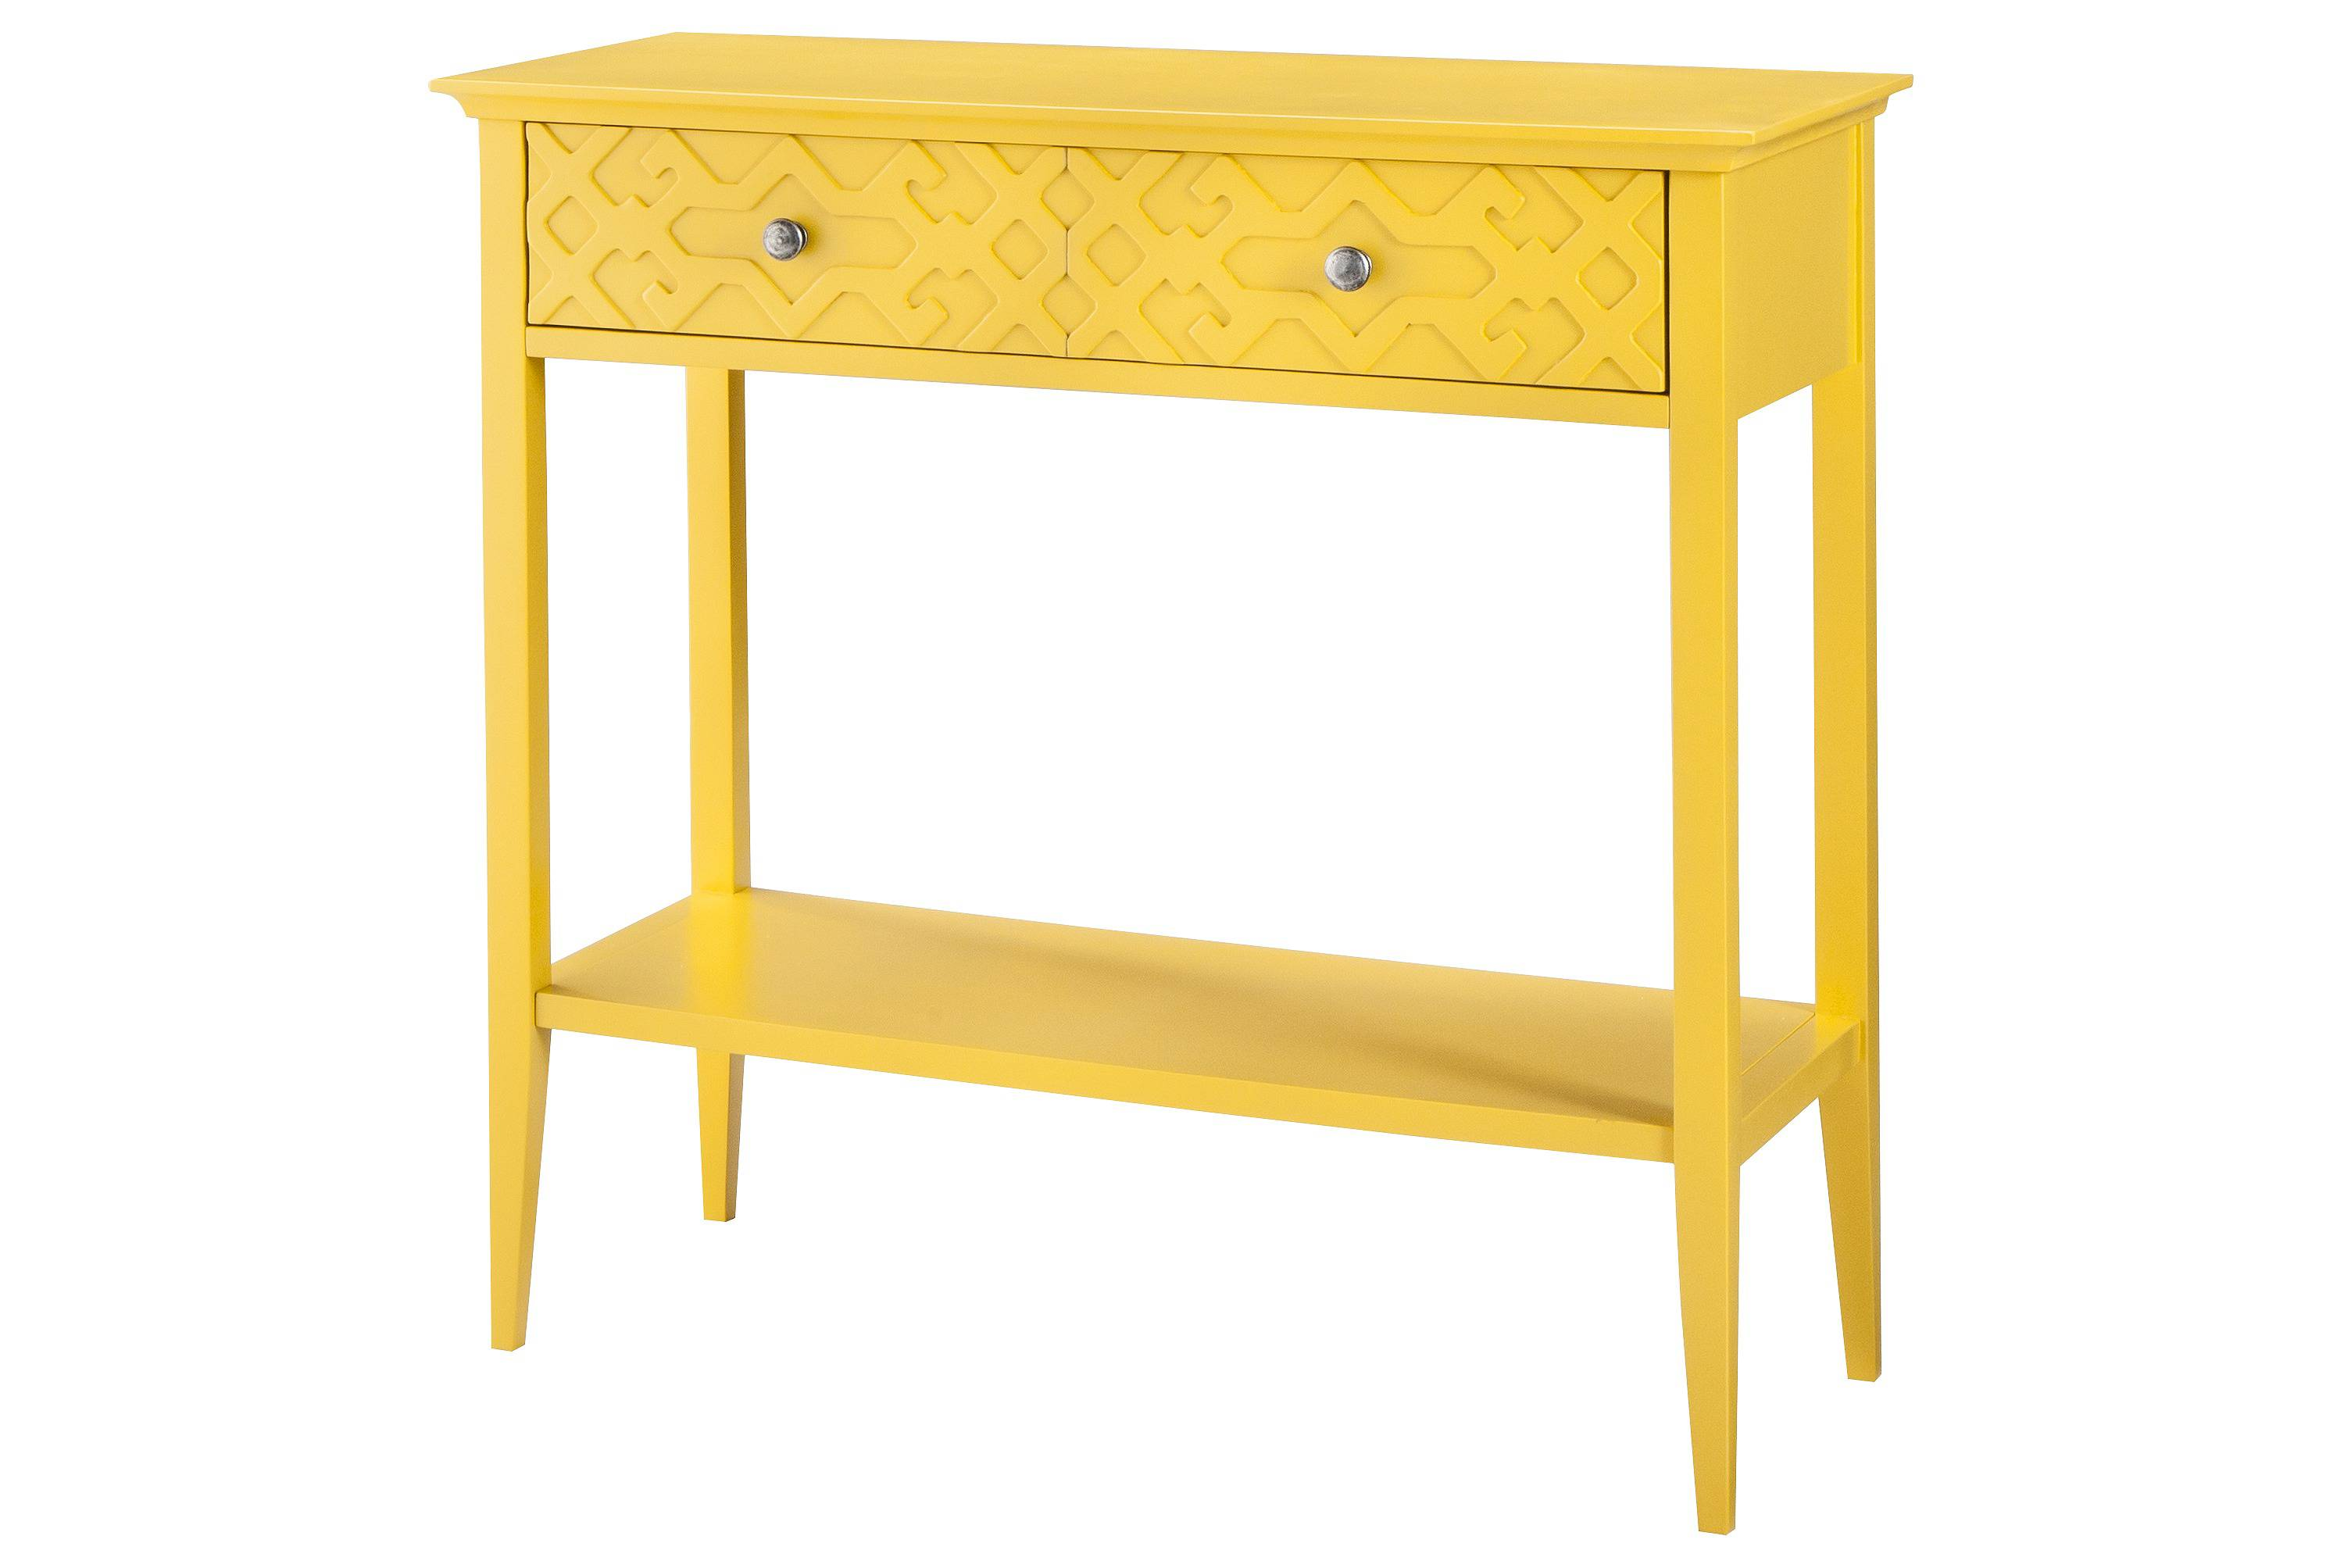 This yellow entryway table will brighten any home!